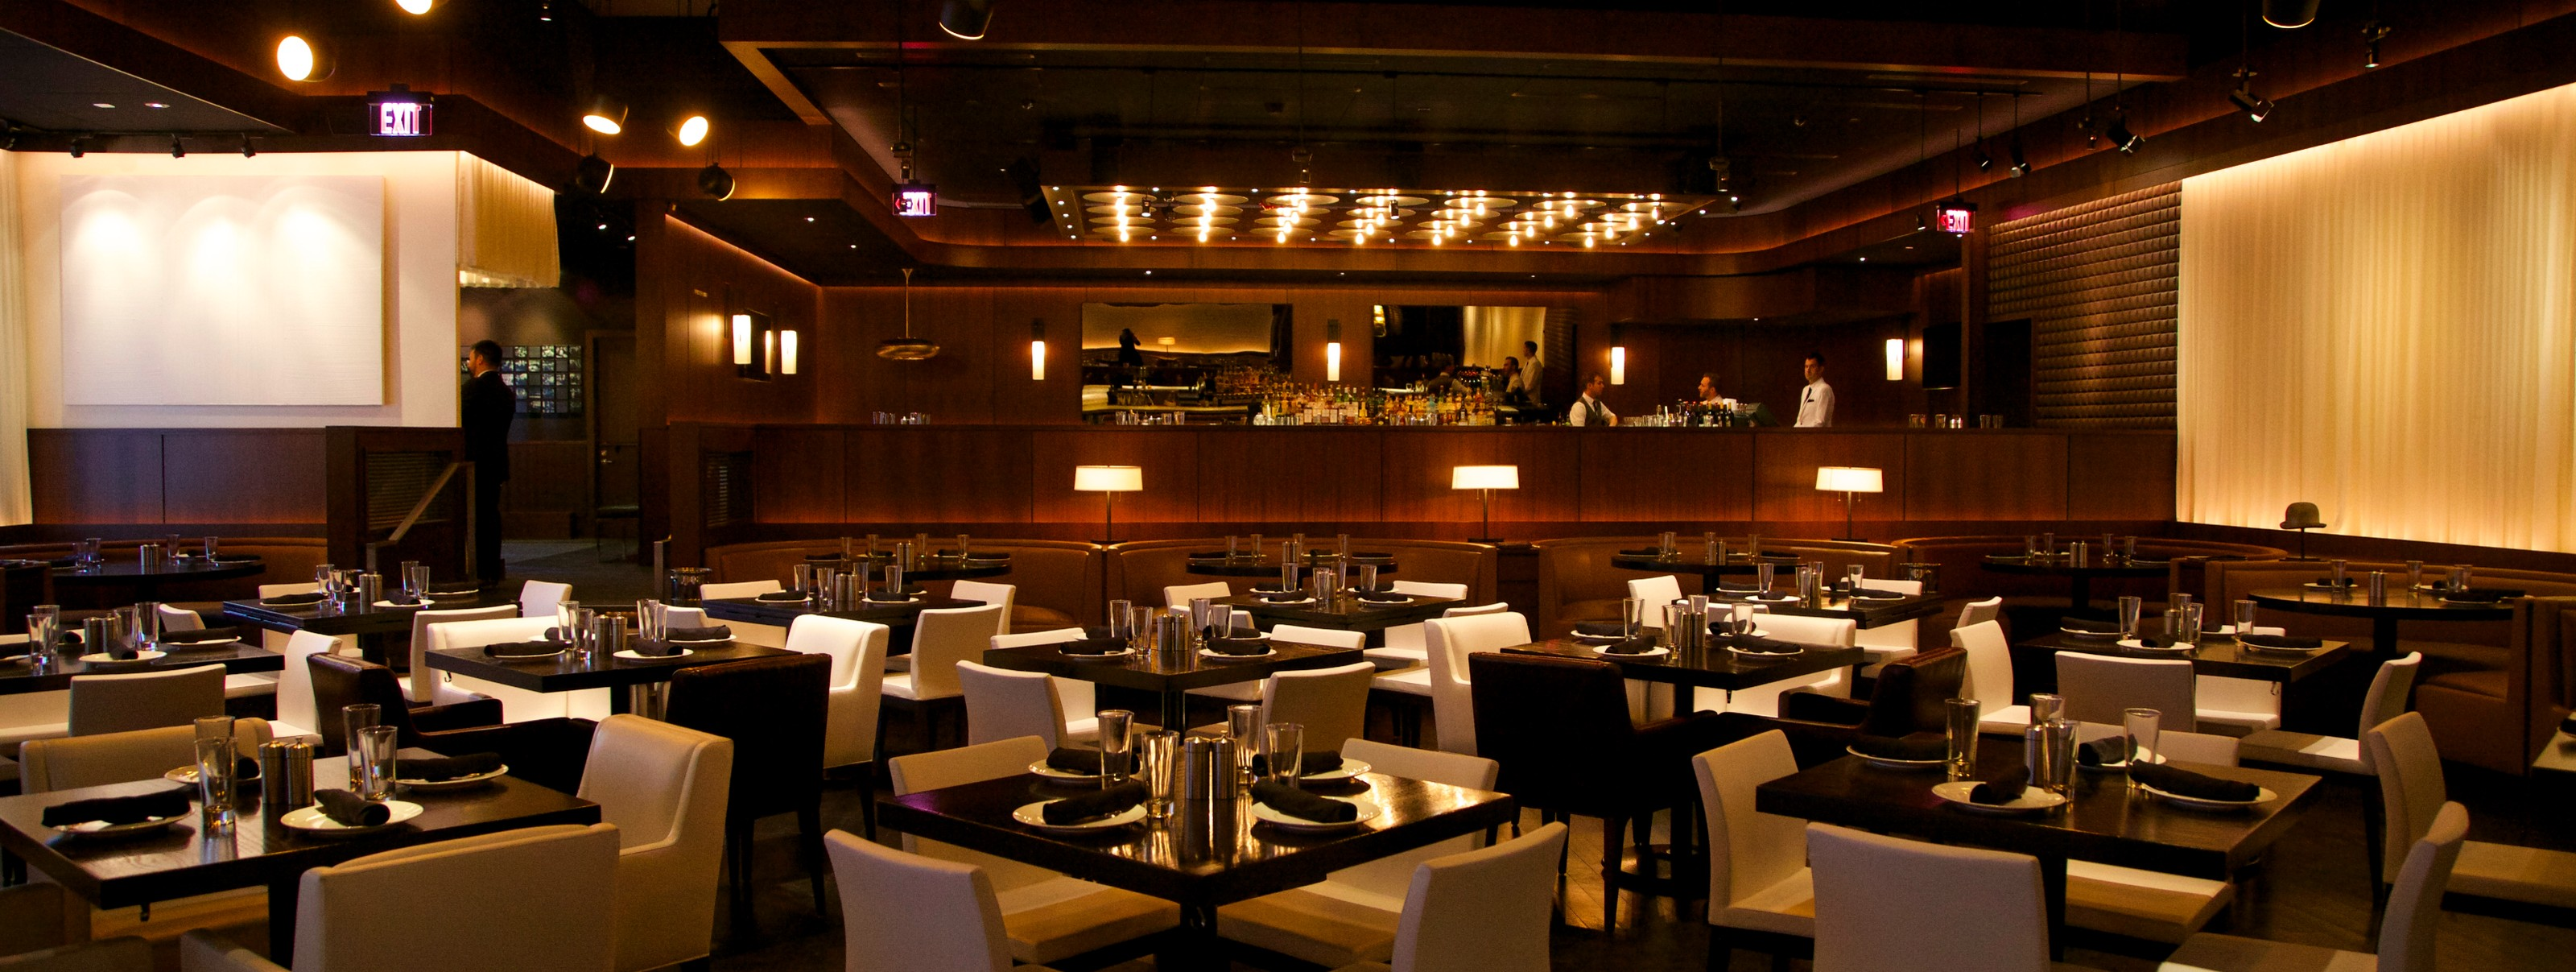 RPM Steak - River North - Chicago - The Infatuation